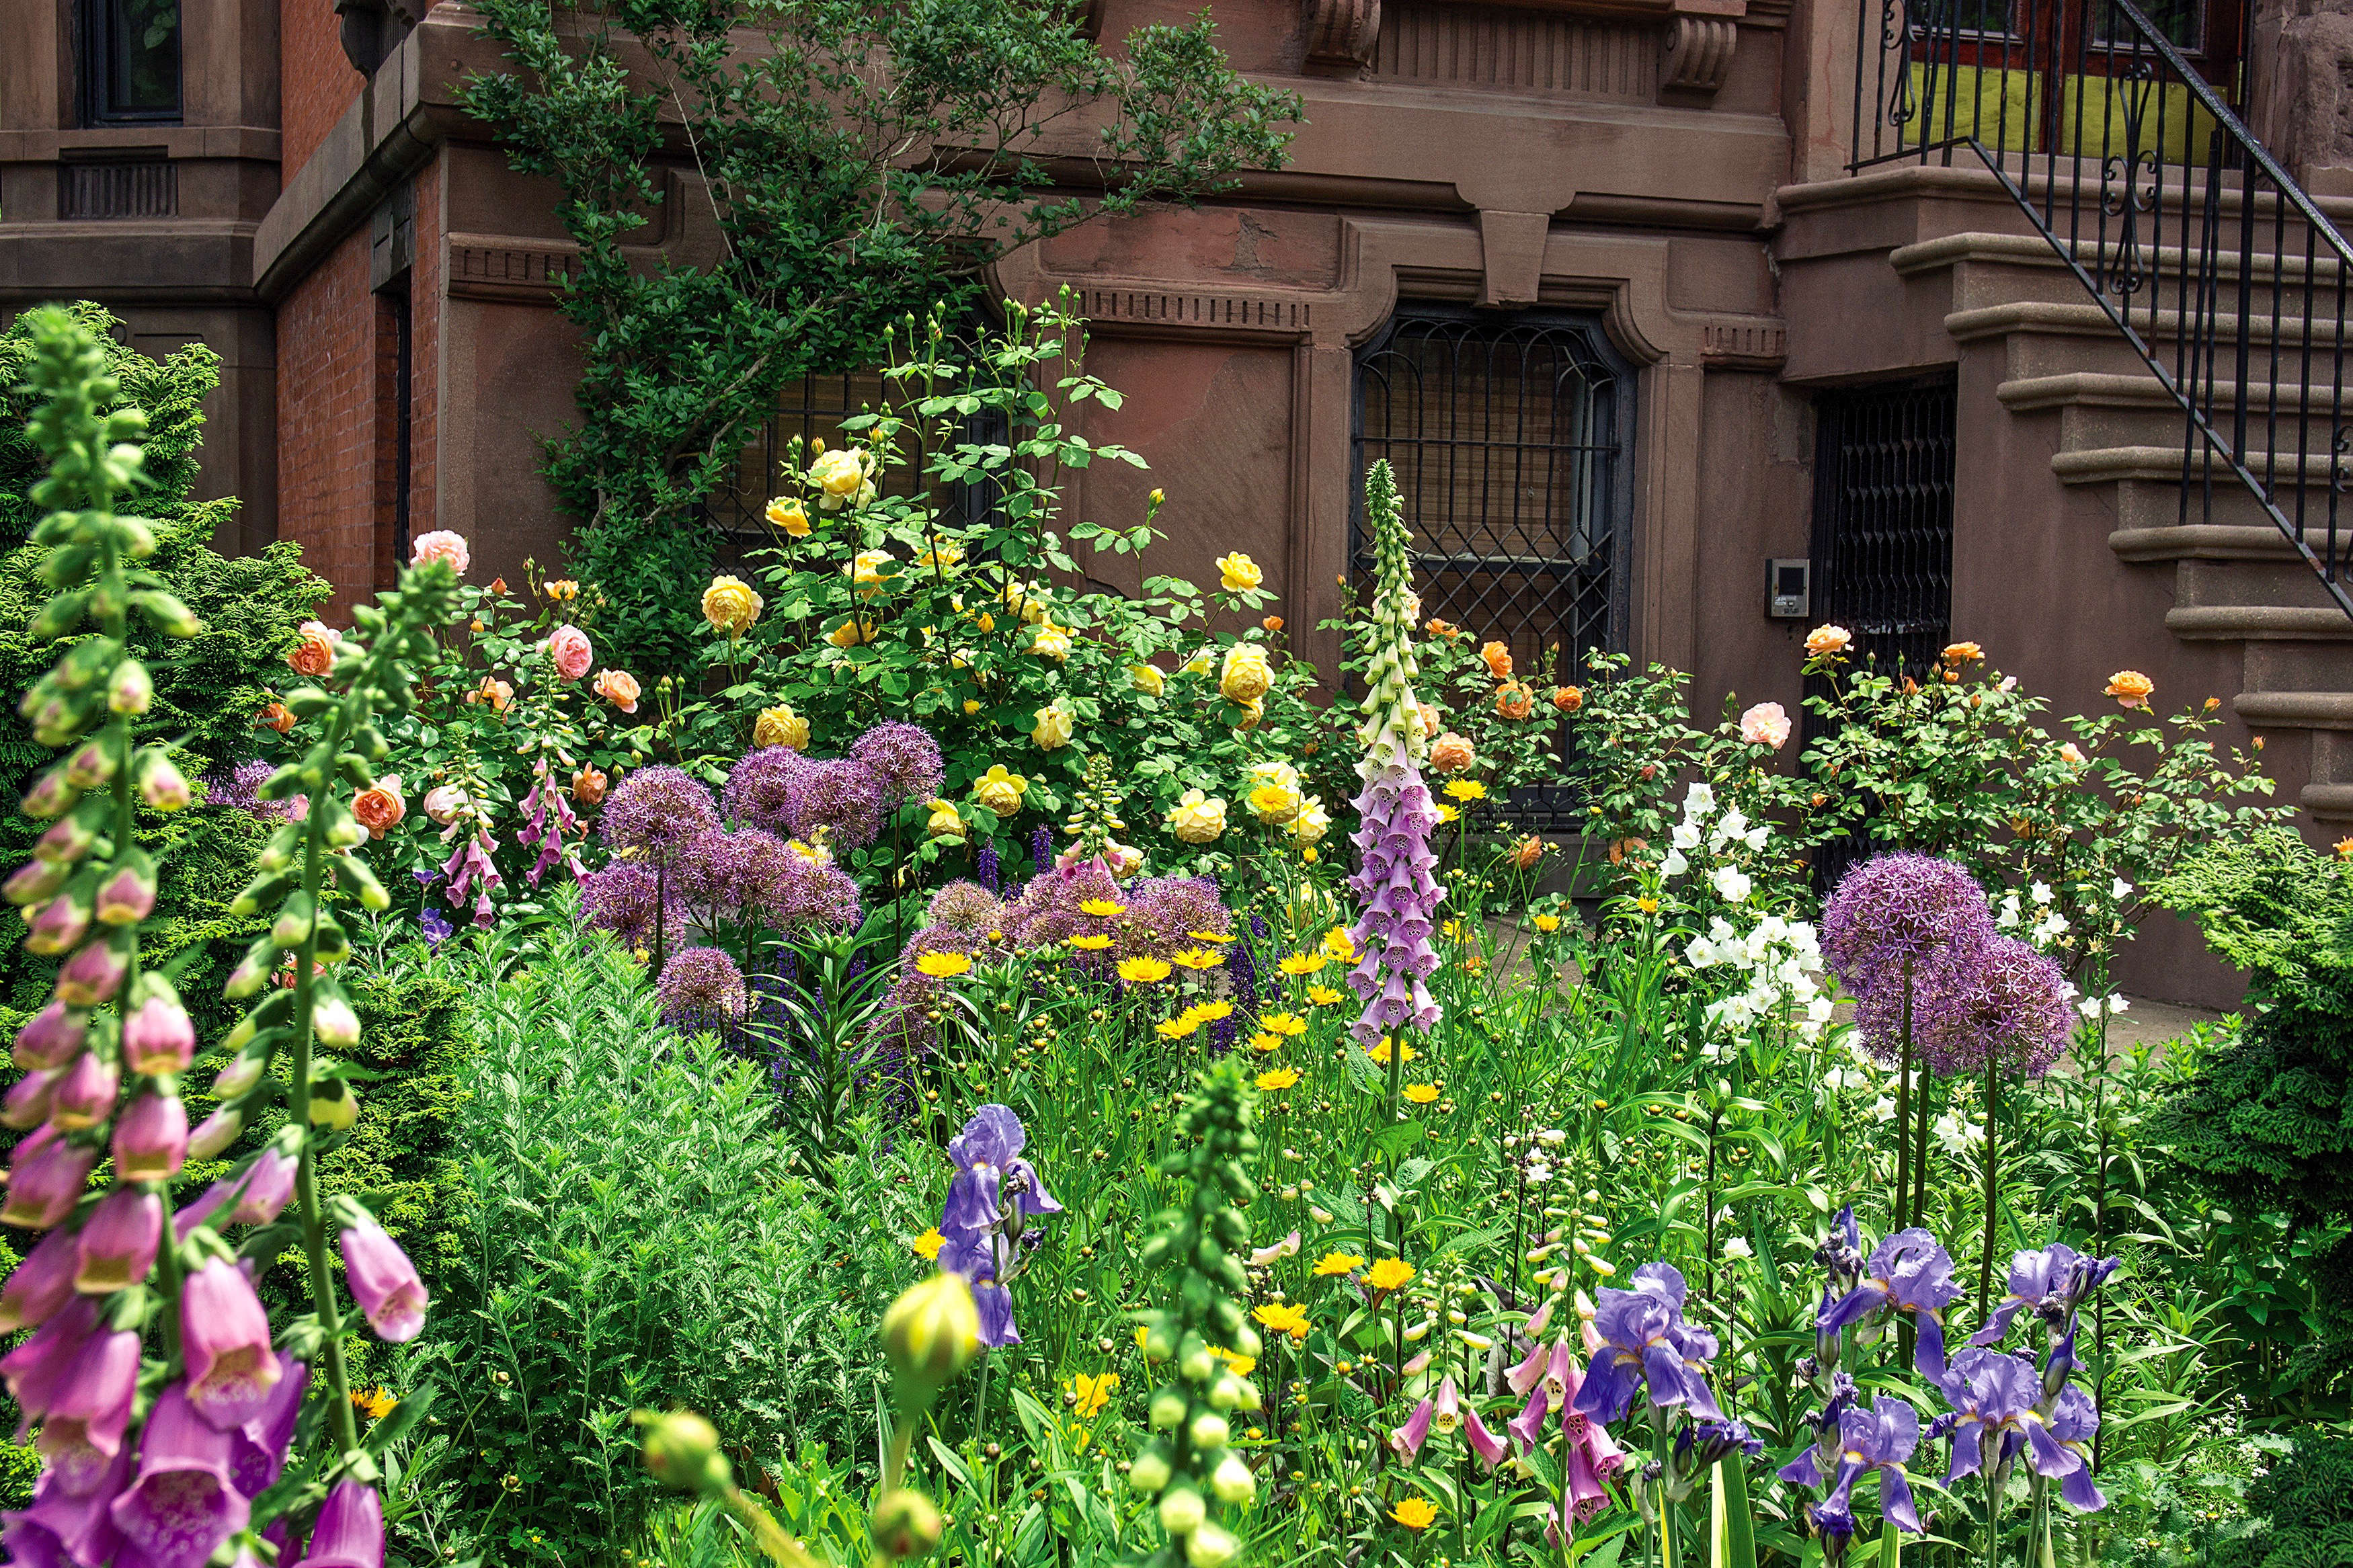 Required Reading: Sidewalk Gardens of New York - Gardenista on sidewalk landscape design, sidewalk pavers, sidewalk planting, sidewalk gardening ideas, sidewalk vegetable garden design, sidewalk lighting ideas, sidewalk paving ideas, sidewalk decorating ideas,